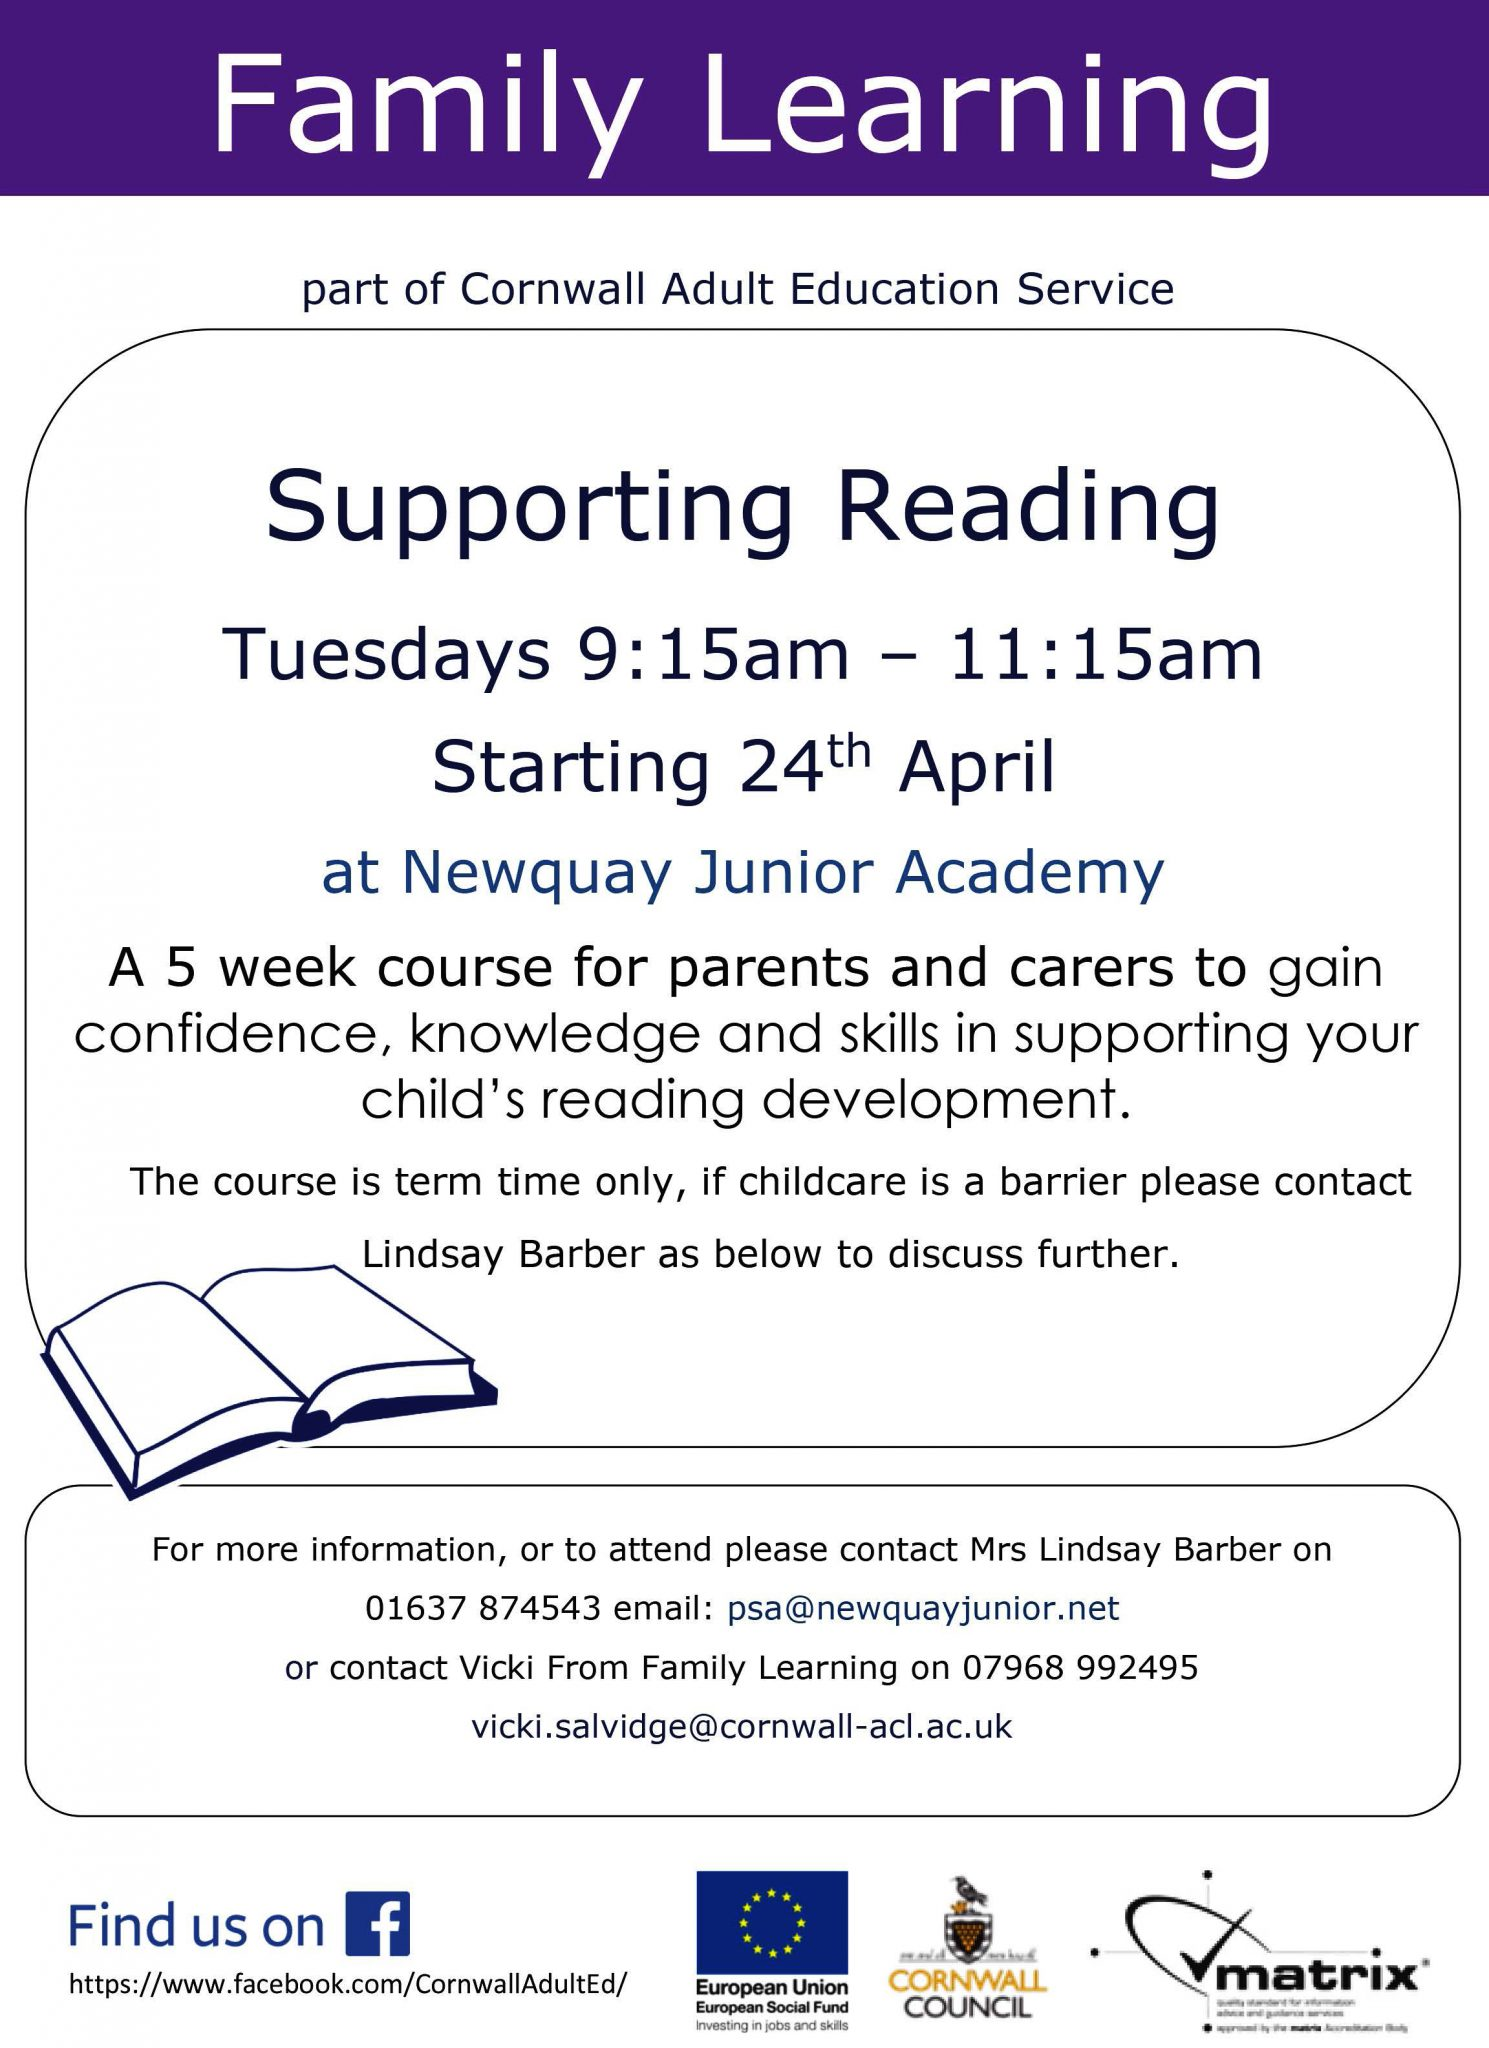 Supporting Reading – Course for Parents and Carers – Newquay